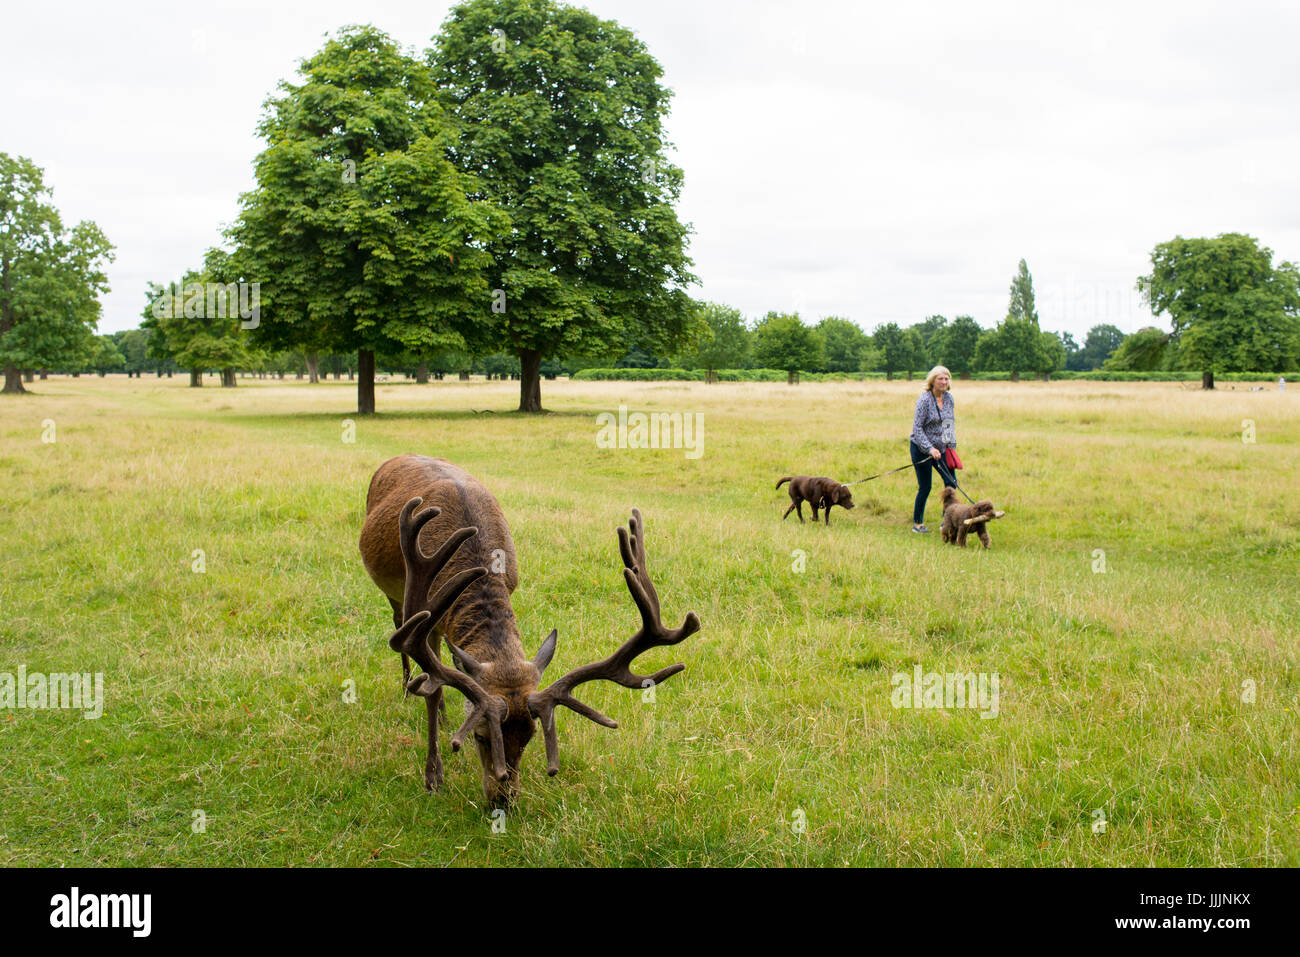 Richmond, London, UK - July 2017: Red Deer feeding on a grass meadow in Bushy park next to an old woman walking - Stock Image